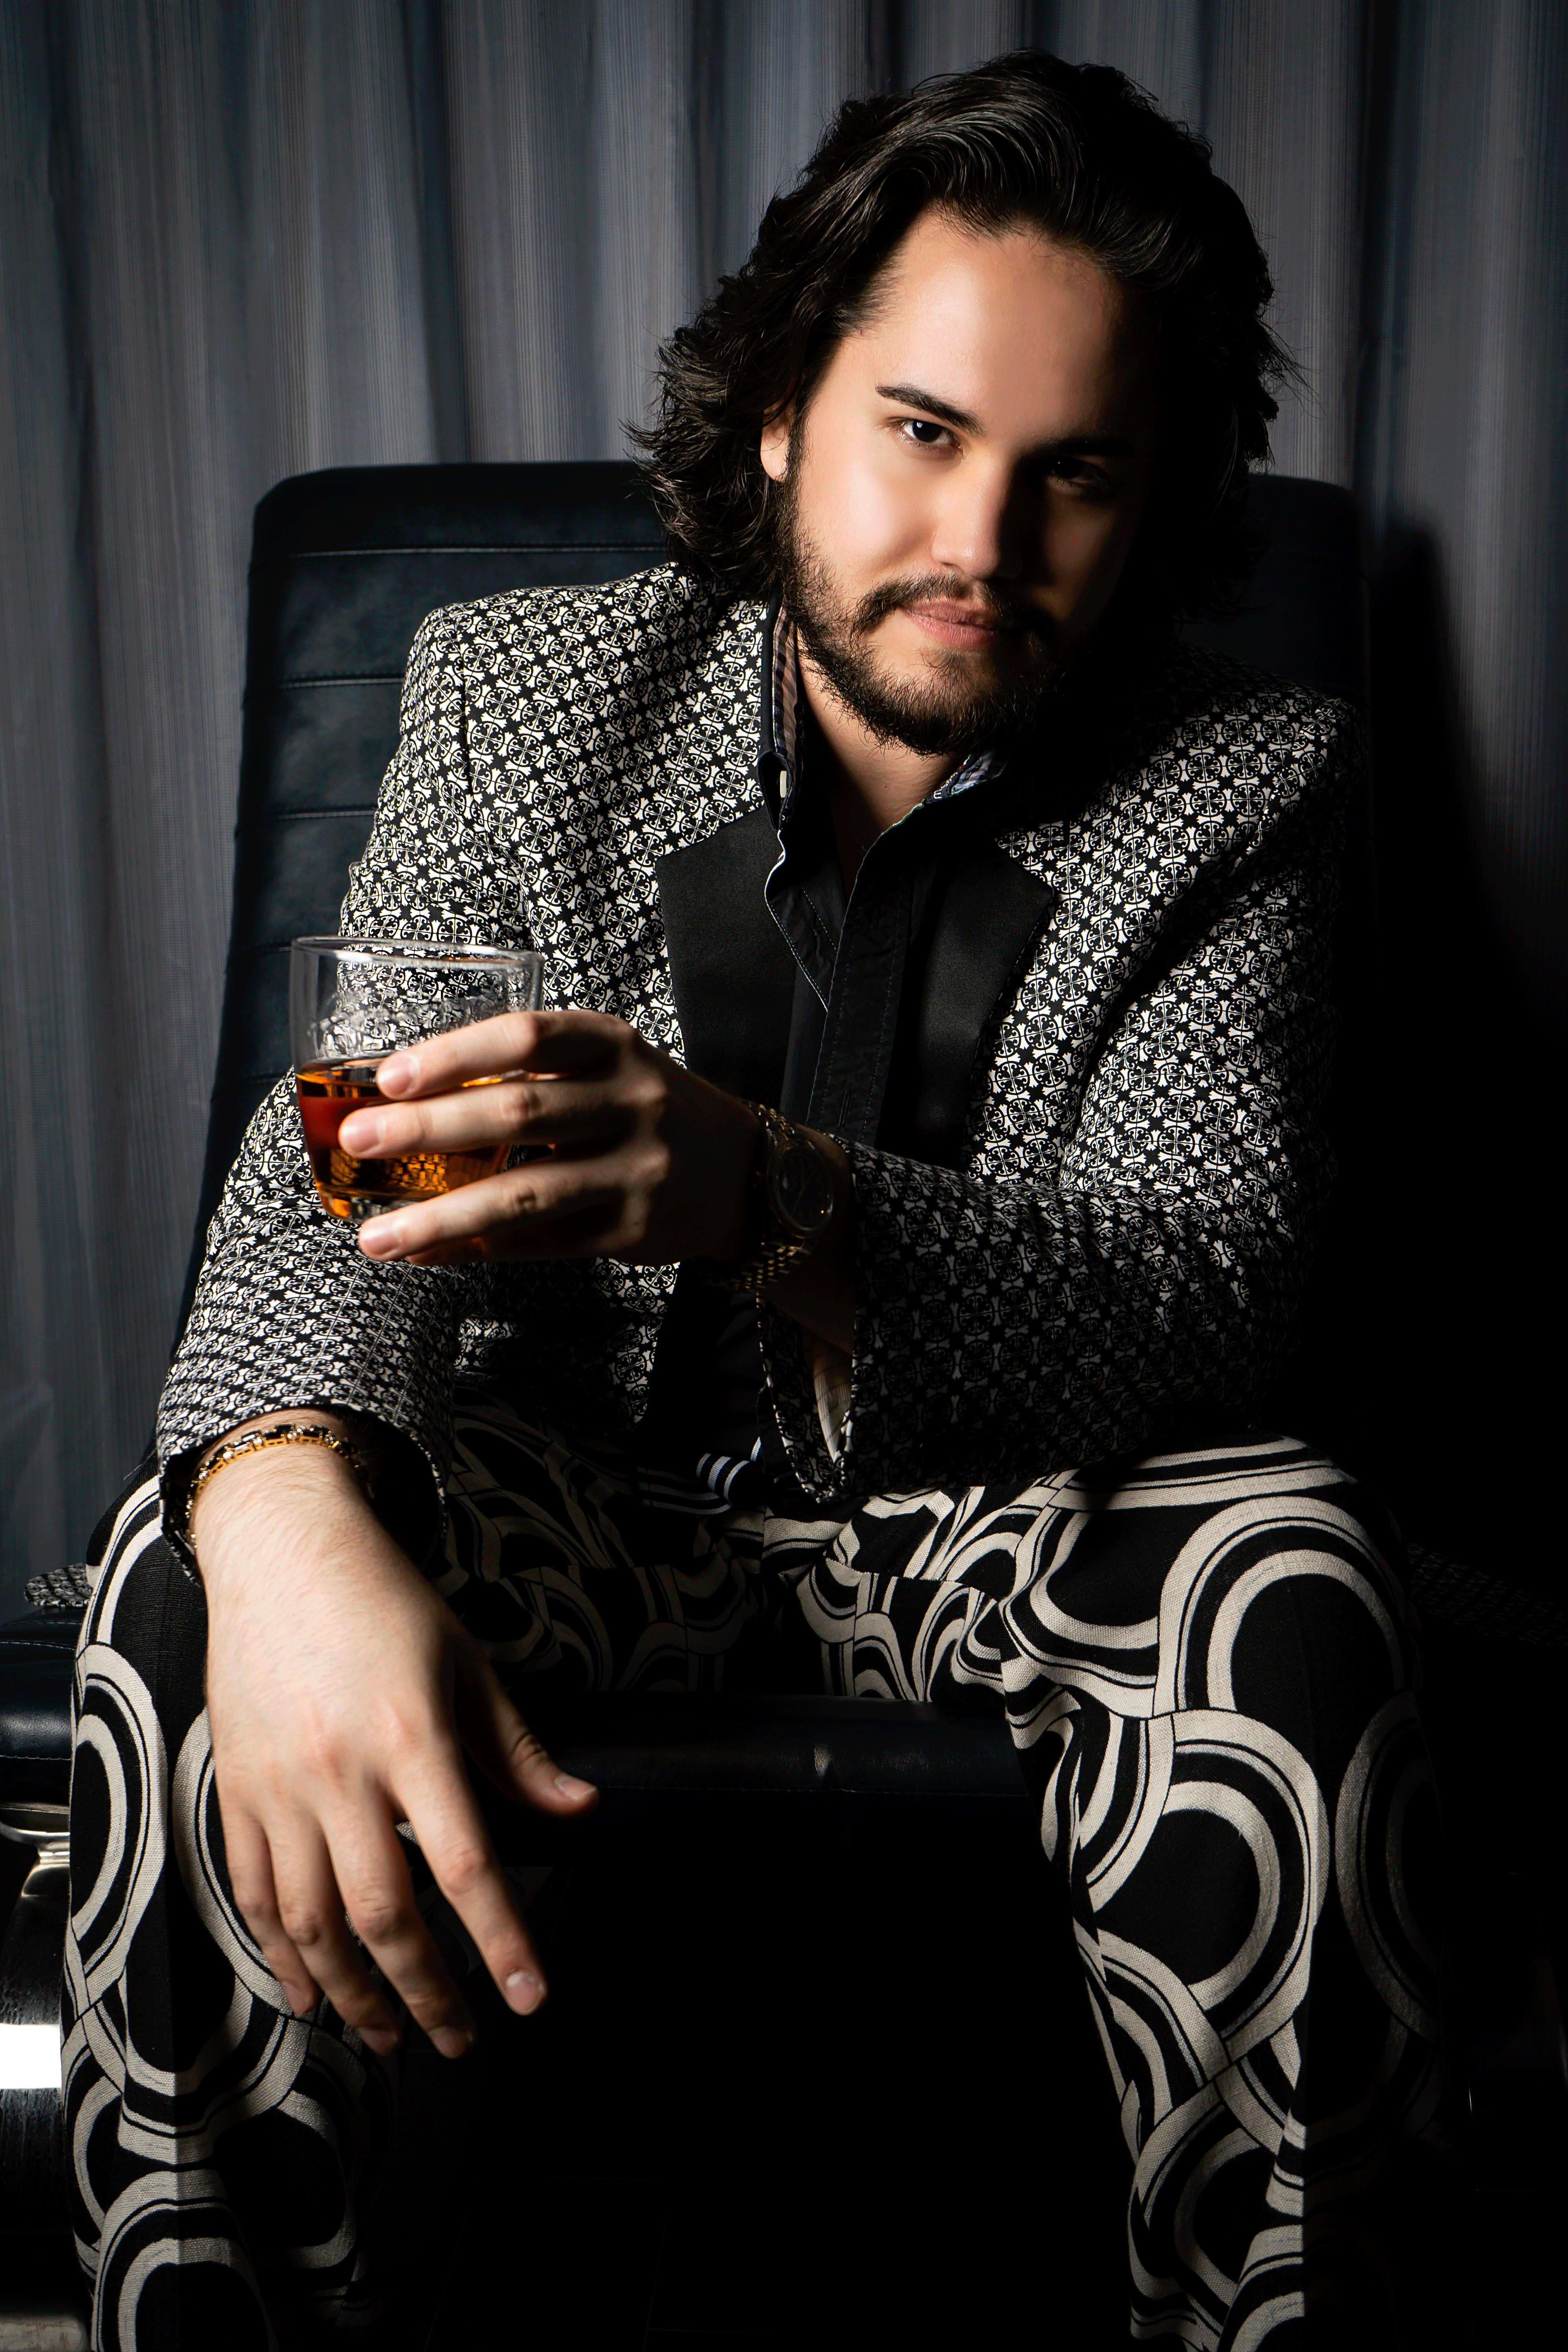 Roman Alexander Wellington Sitting With A Whisky Glass